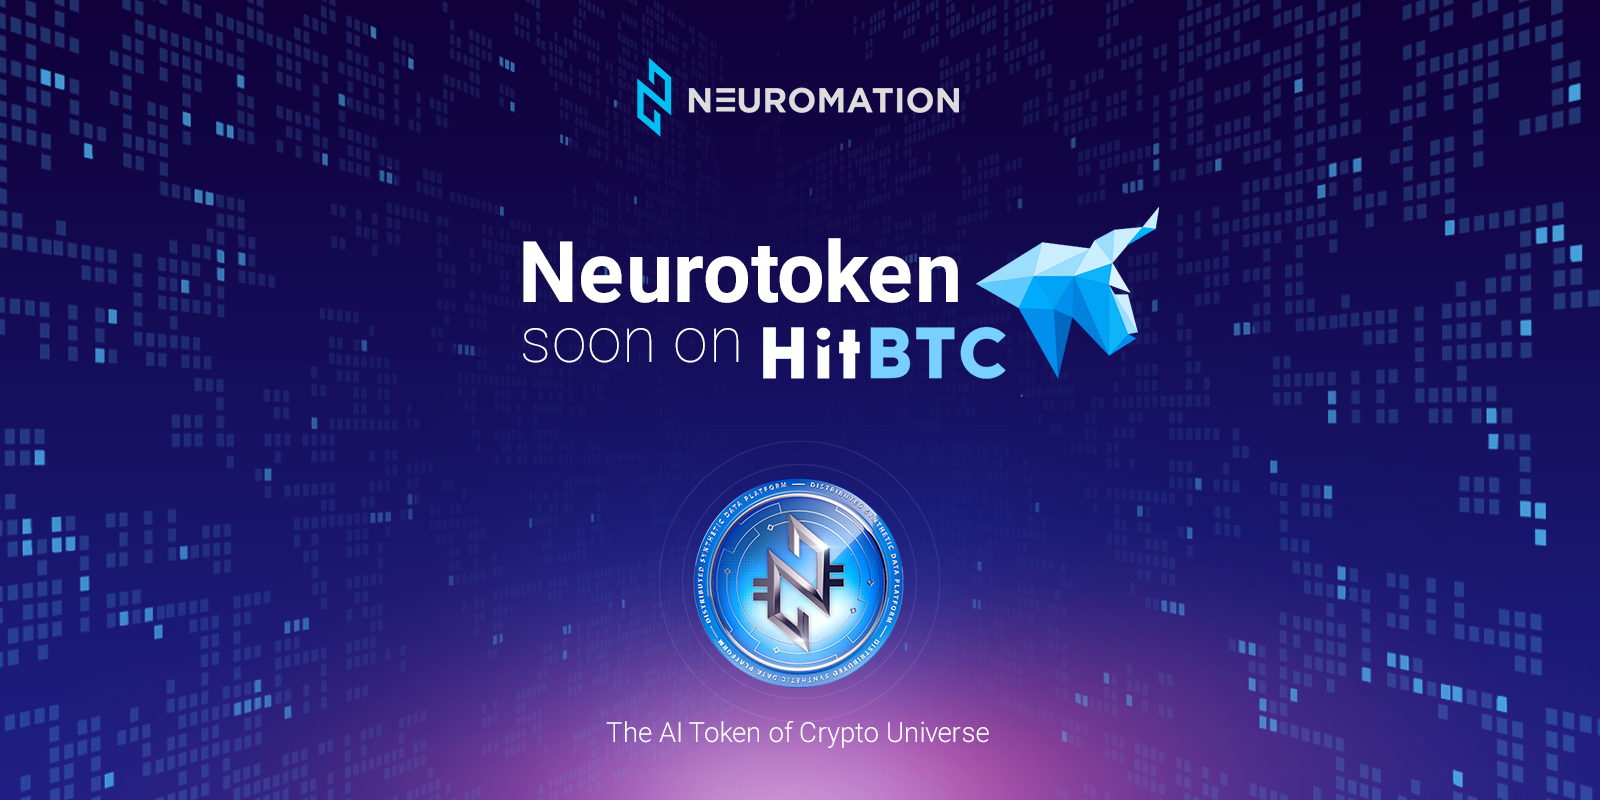 Neuromation's Neurotoken (NTK) secures listing on HitBTC exchange